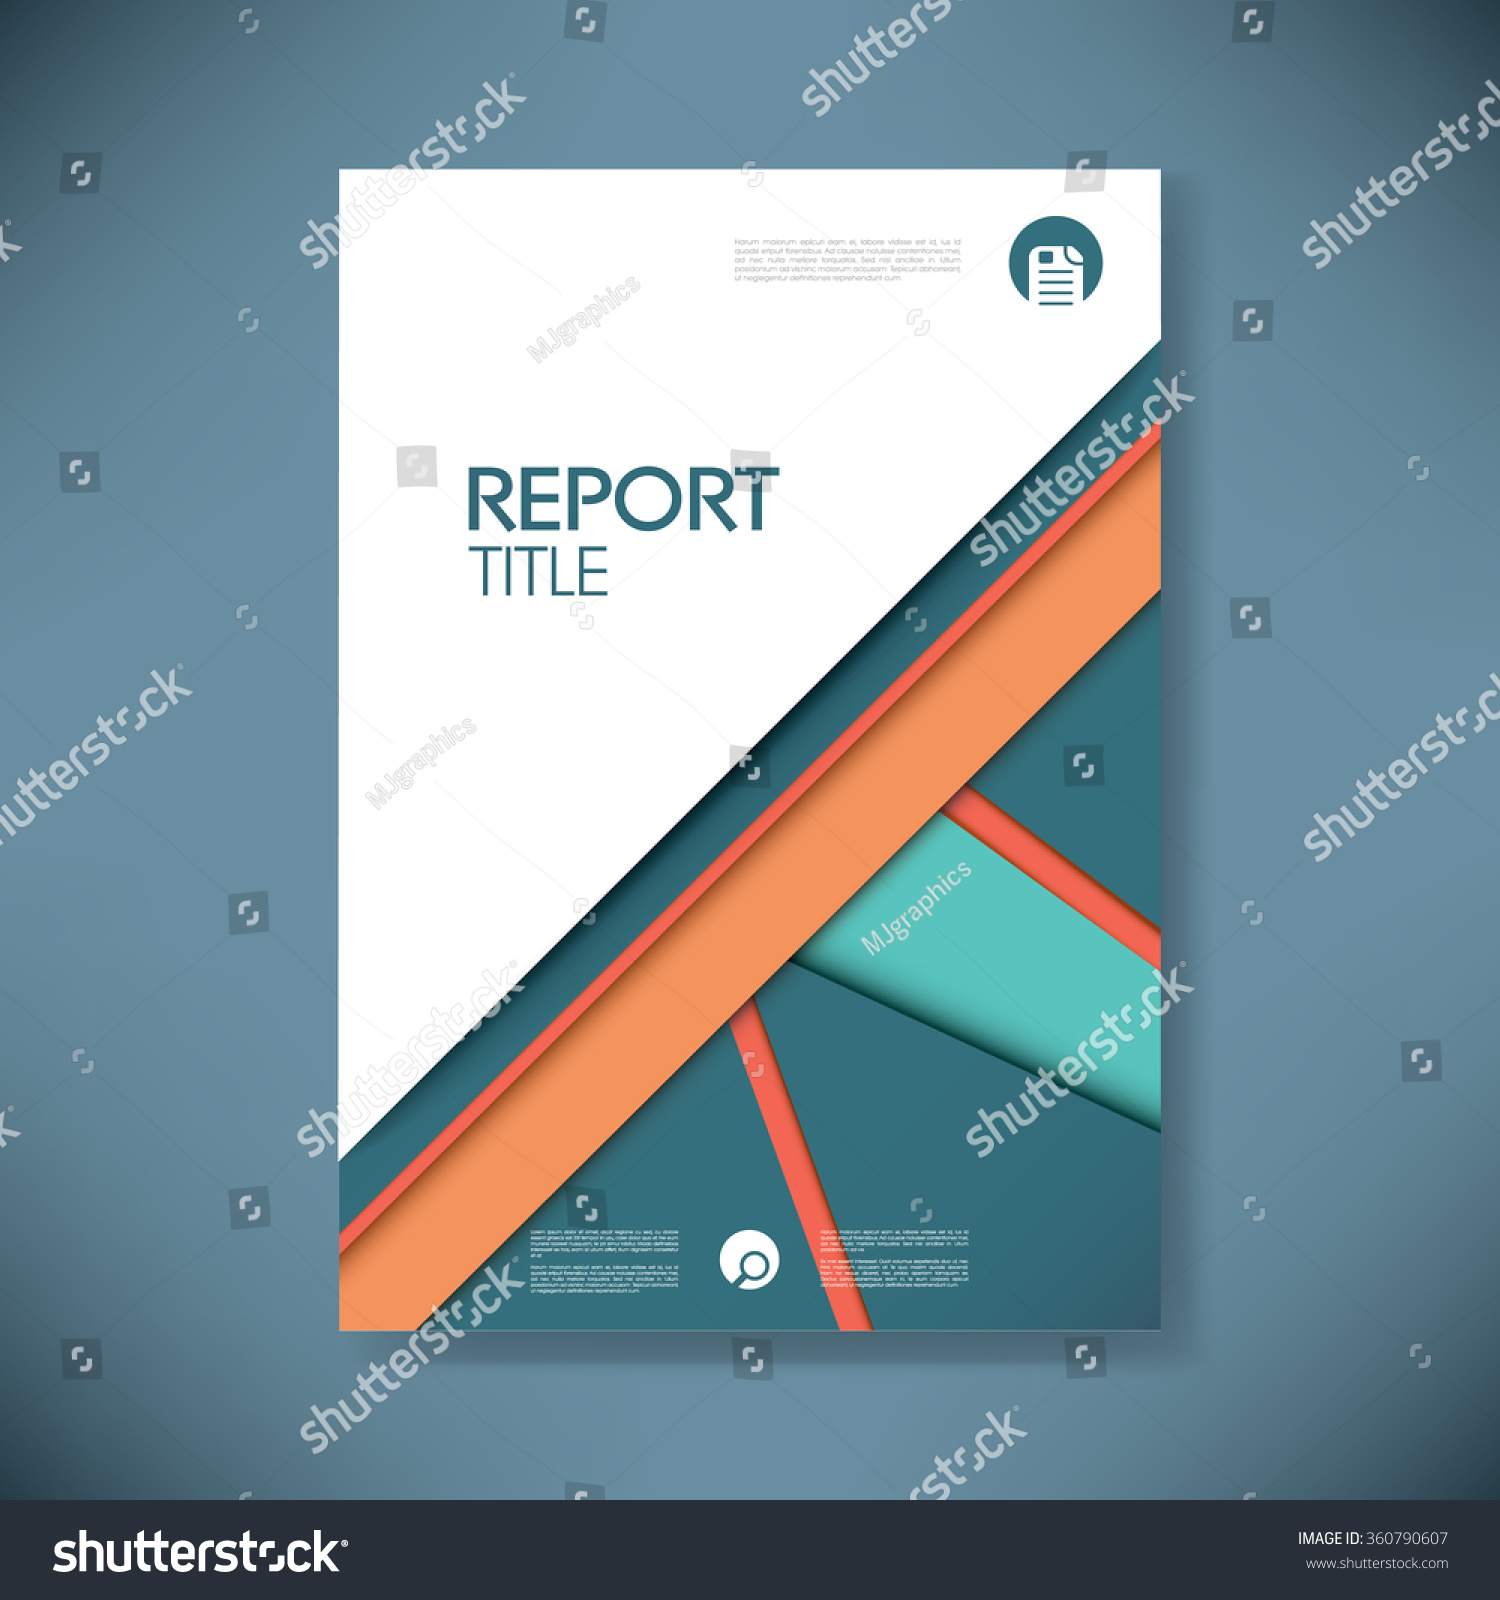 royalty business report cover template on blue 360790607 business report cover template on blue material design background brochure or presentation title page